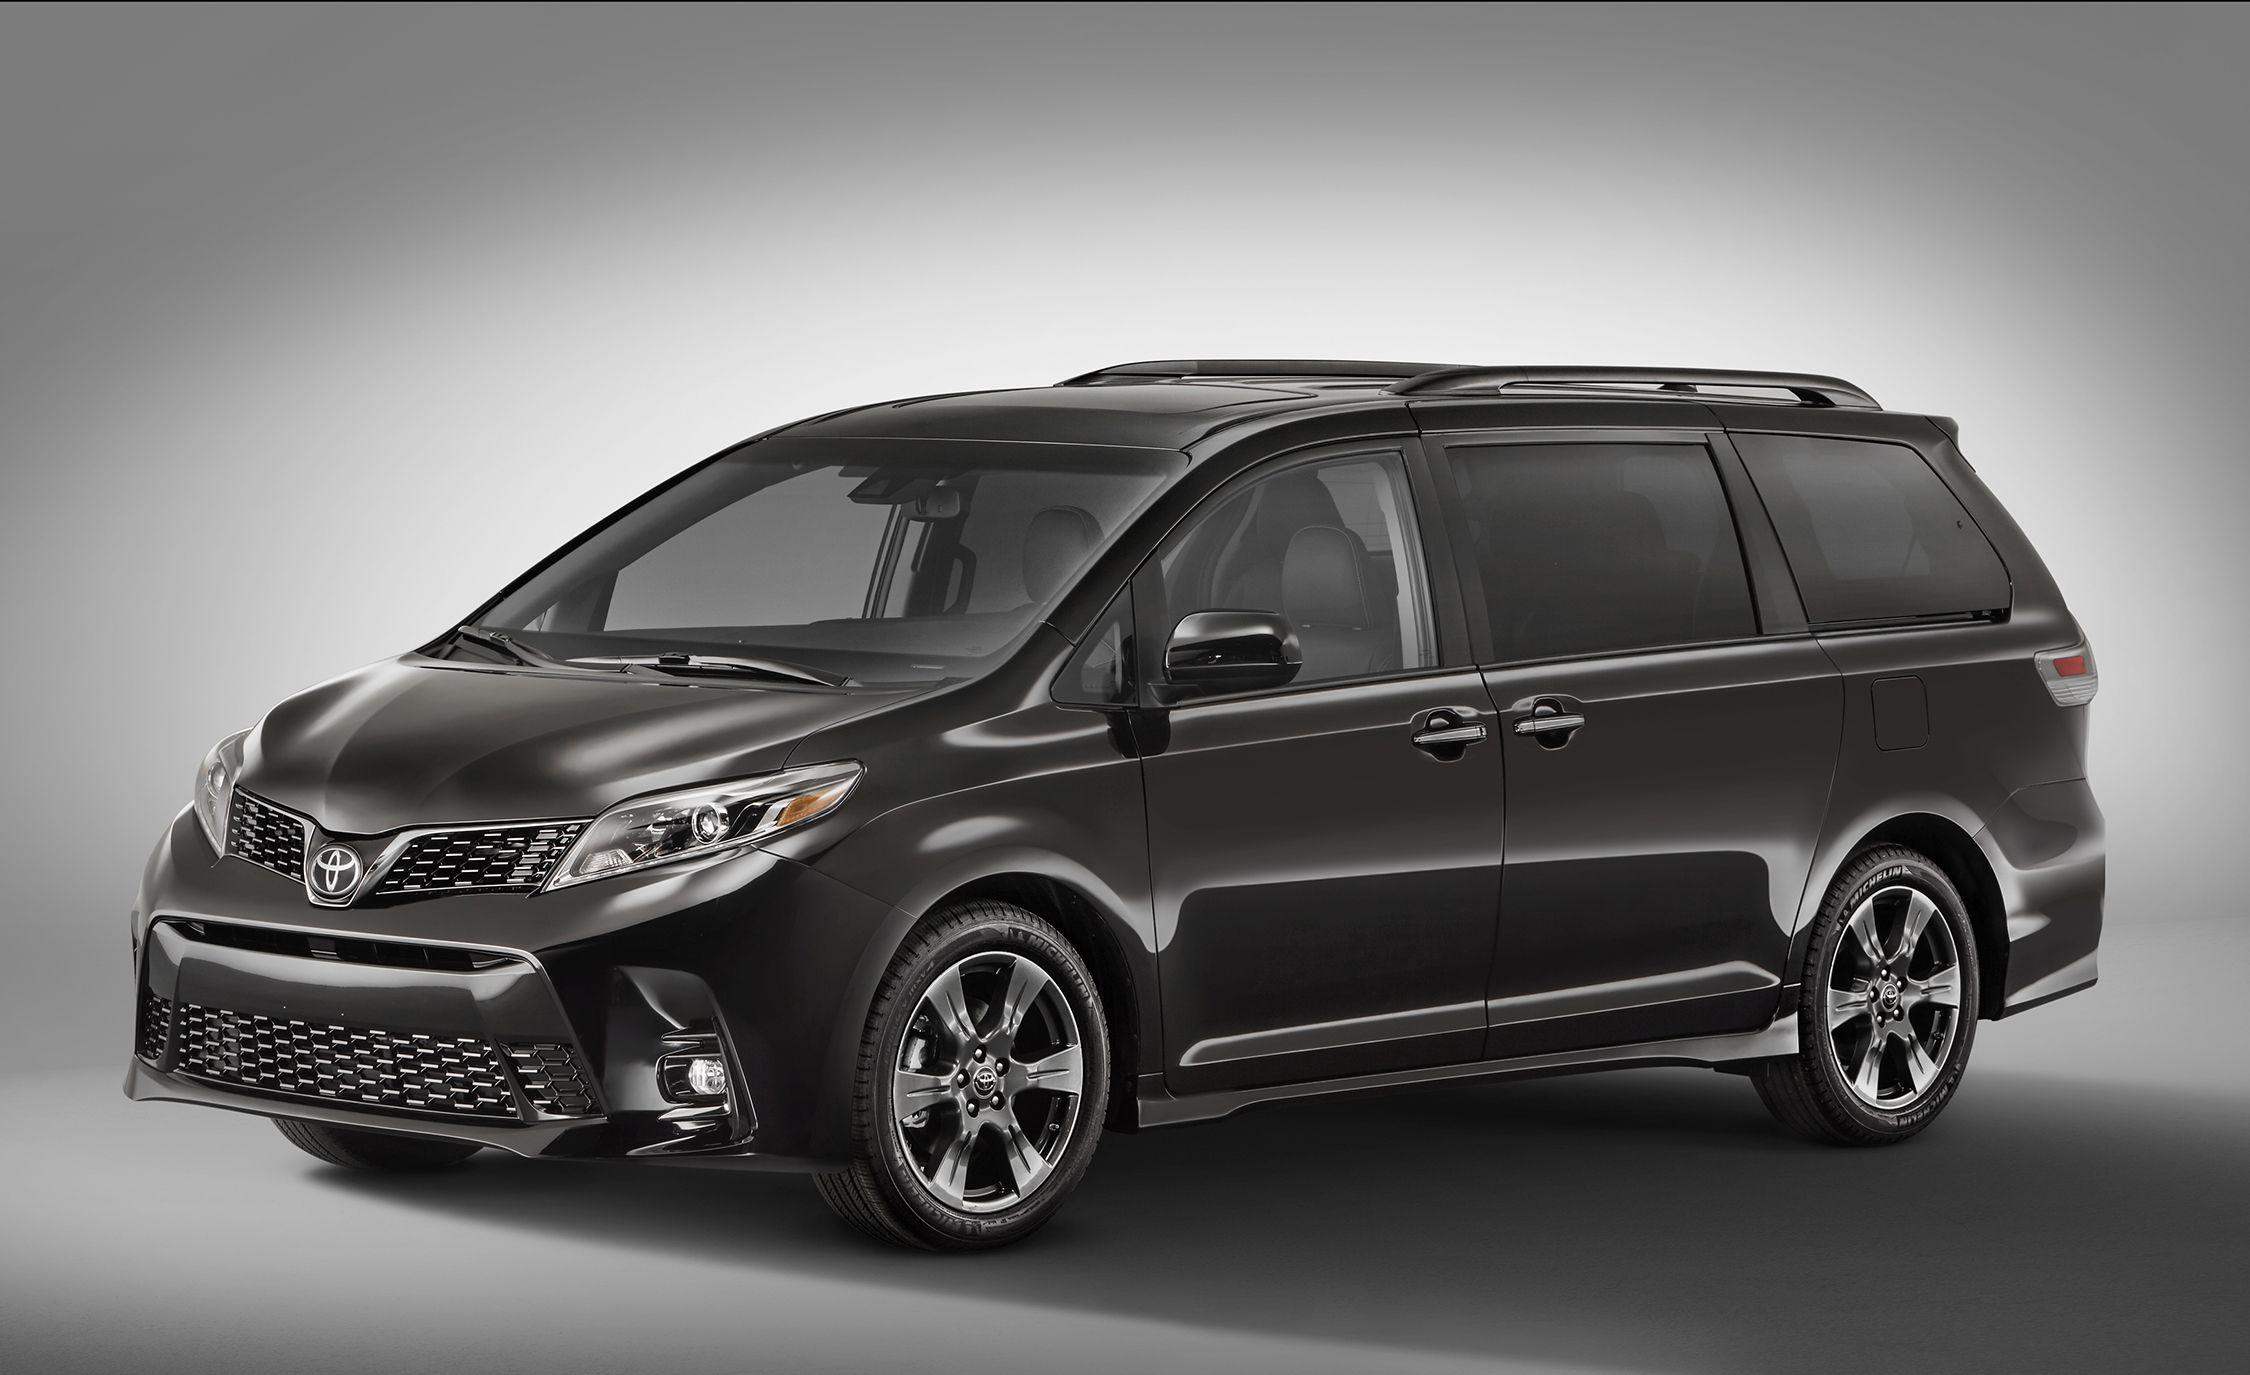 2018 Toyota Sienna: Updated Looks and Tech to Match the Updated Powertrain